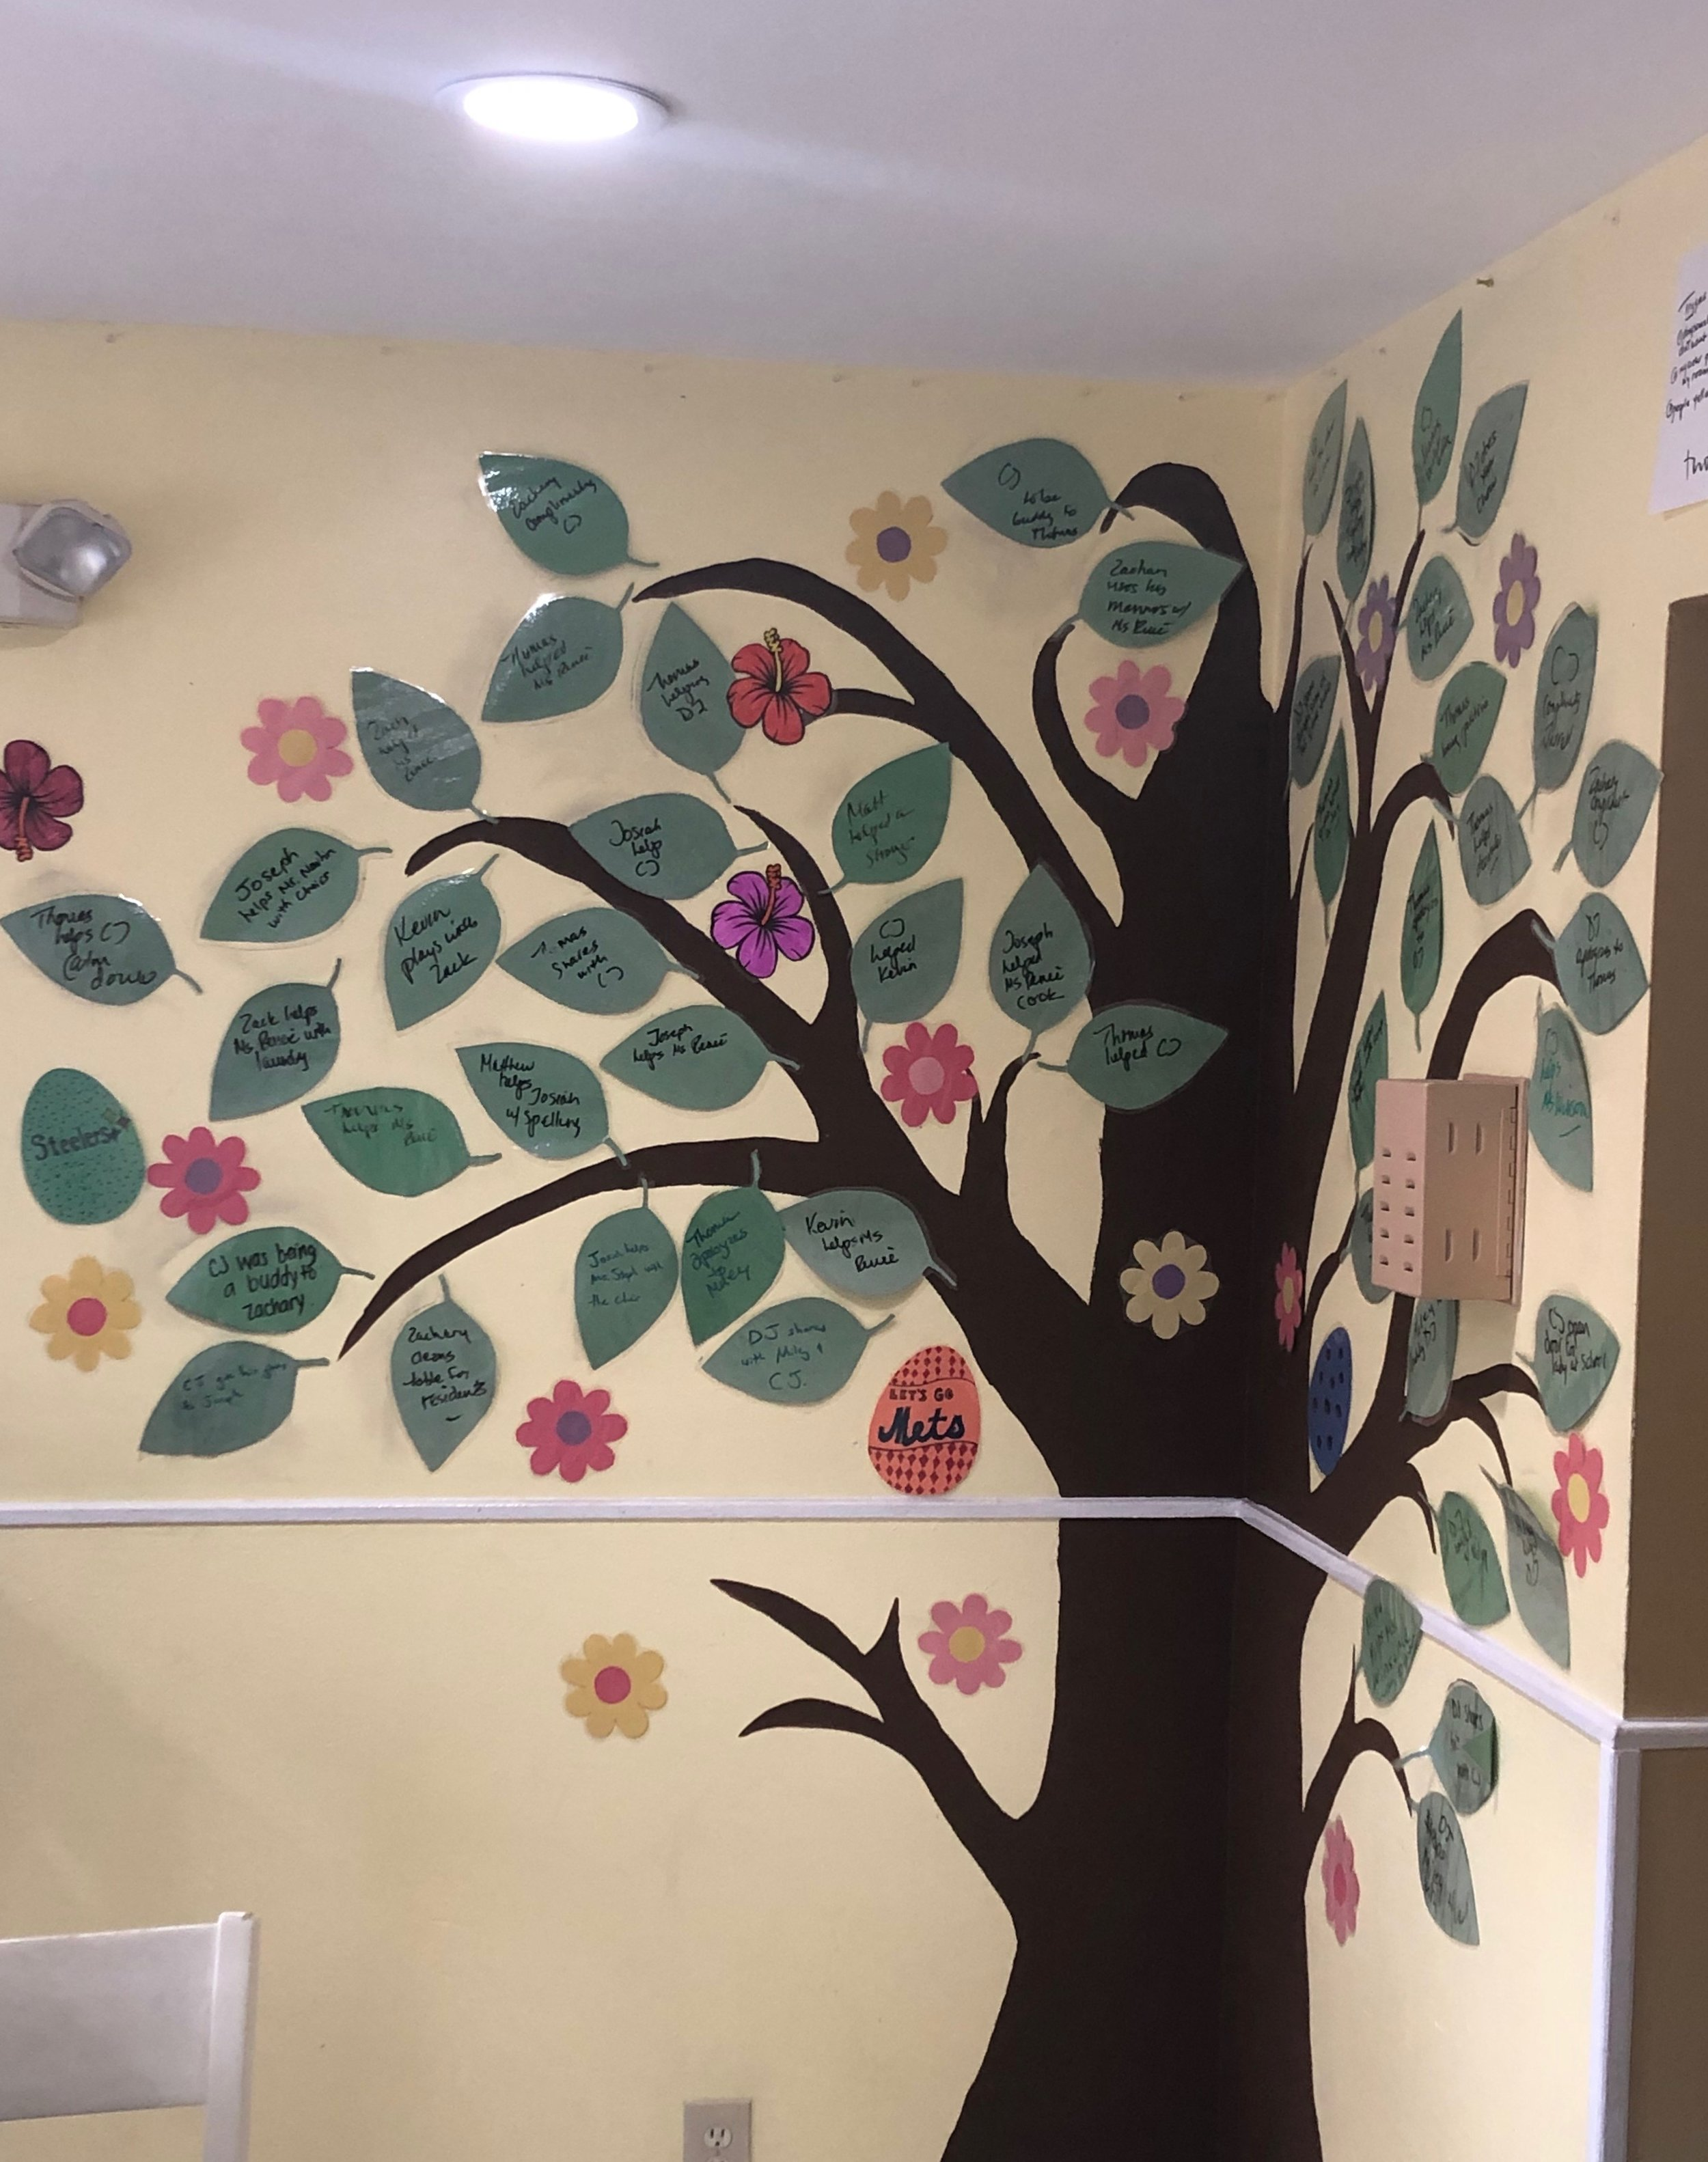 Merrick Group Home   Residents created an Acts of Kindness Tree. Every time they fill the tree it will be considered one act of kindness. Our goal is to complete as many trees as possible!